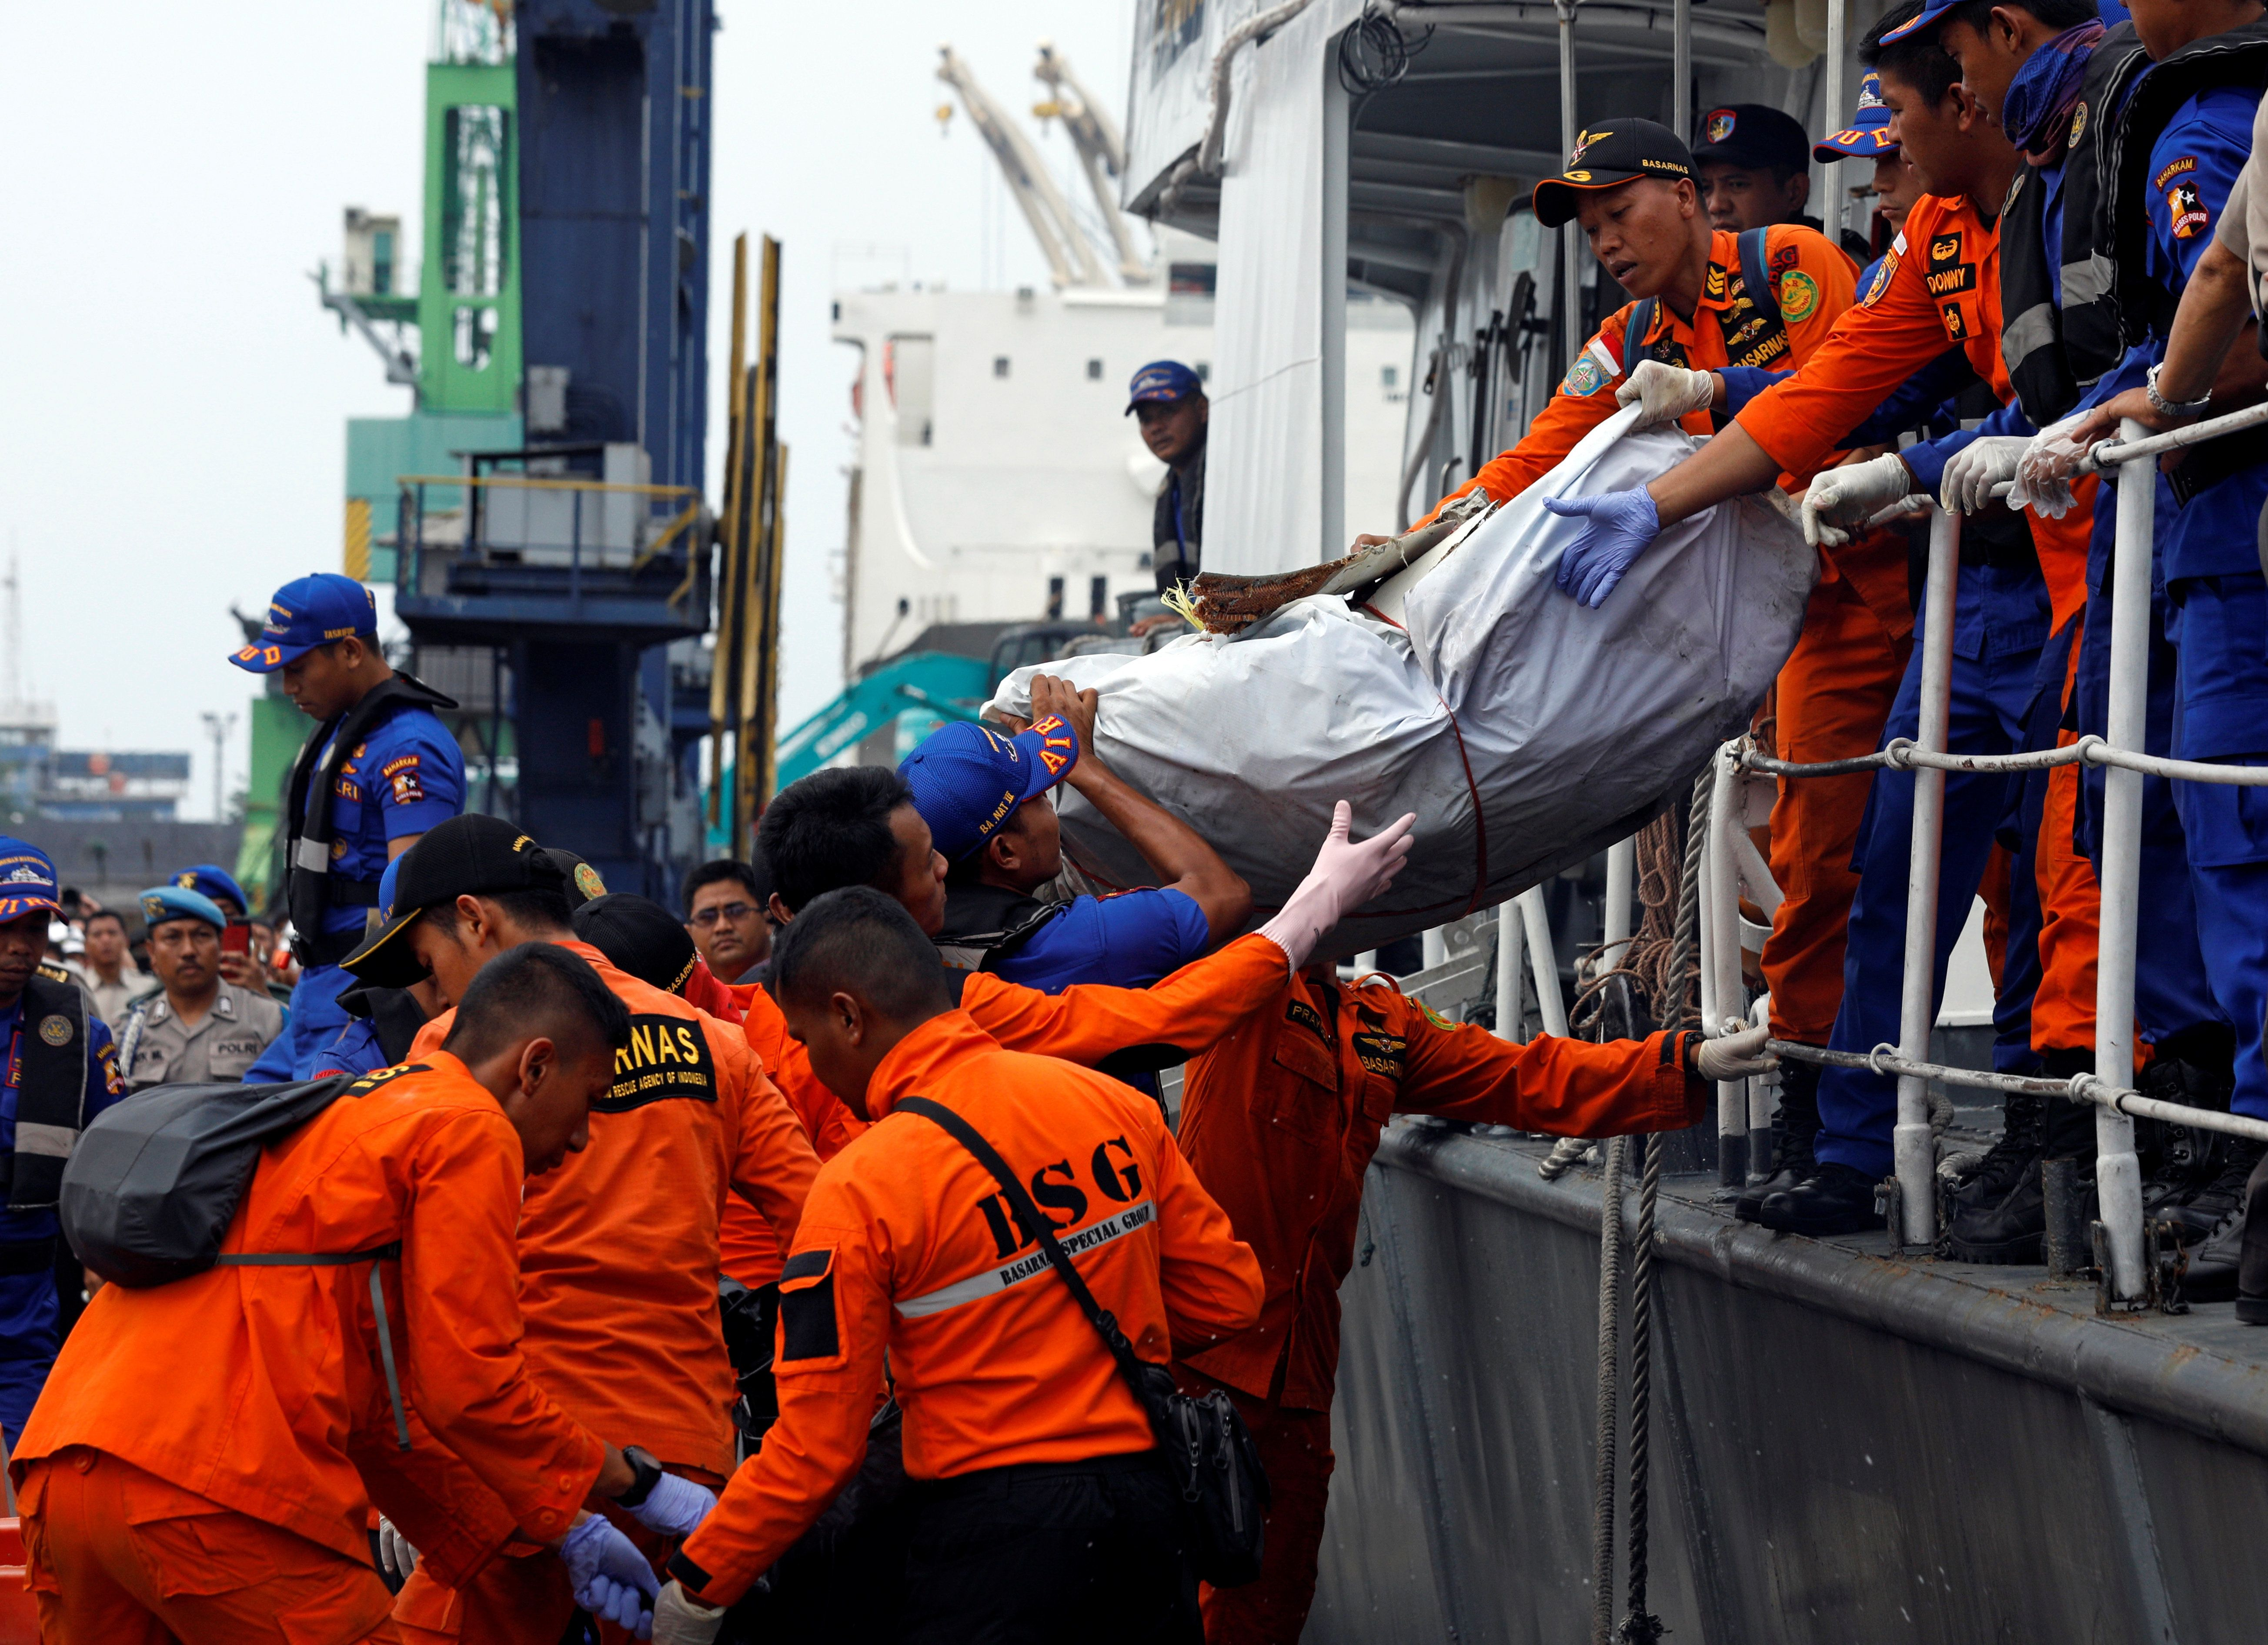 The National Search and Rescue Agency said that 10 intact bodies, as well as body parts, have been recovered.